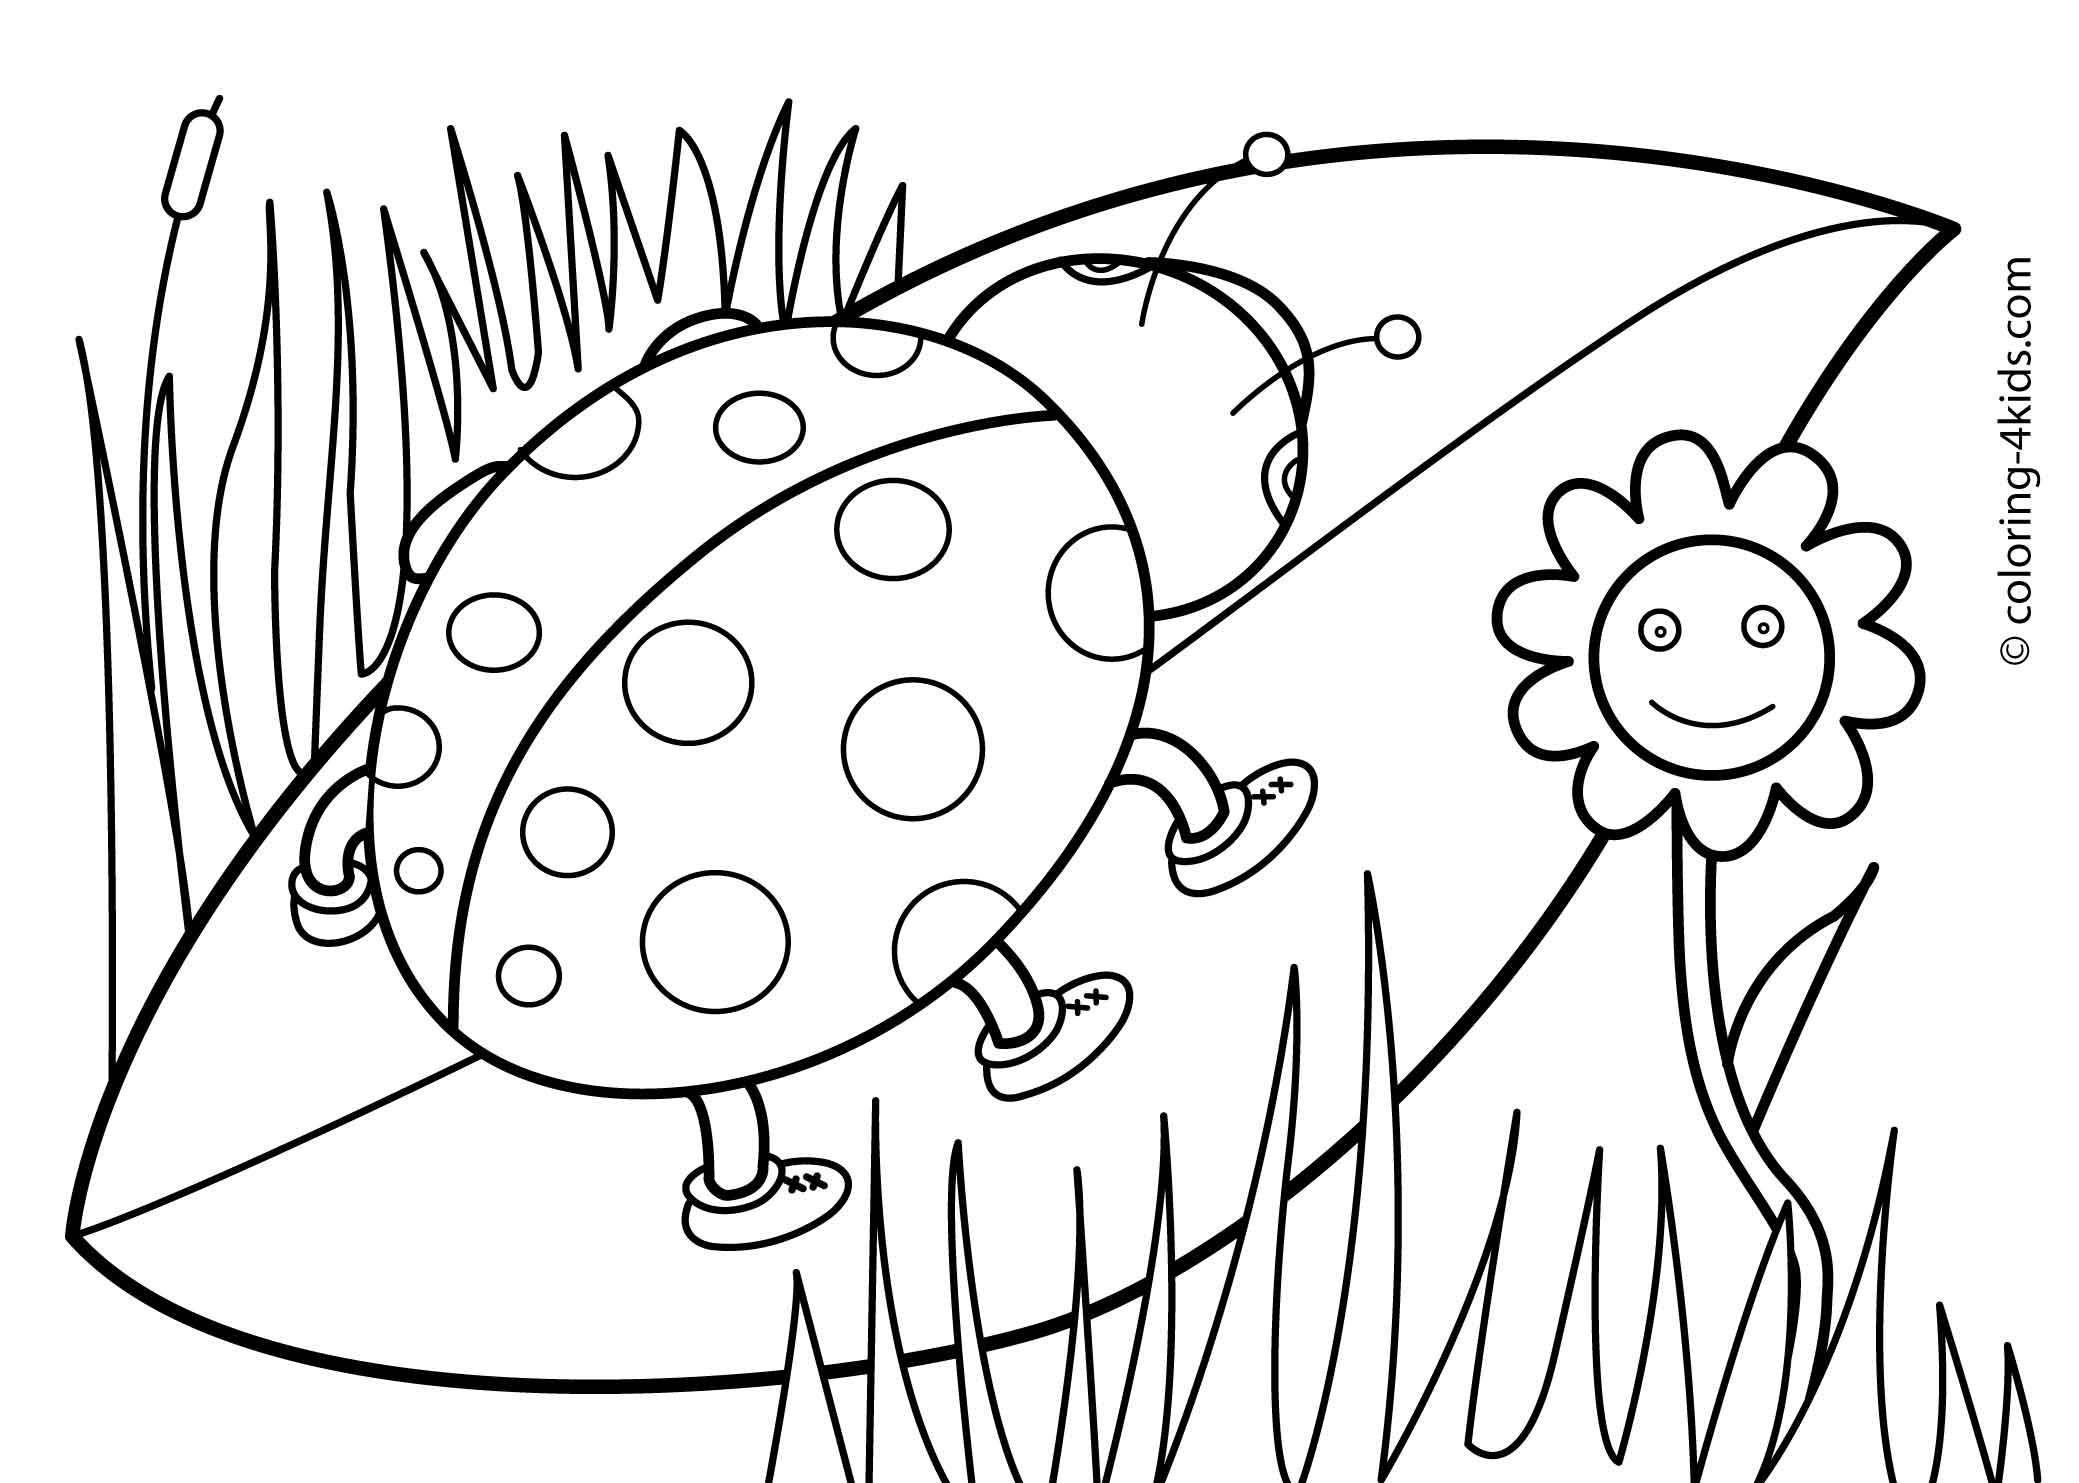 Coloring Pages ~ Spring Coloring Pages Printable Free Incredible - Spring Coloring Sheets Free Printable